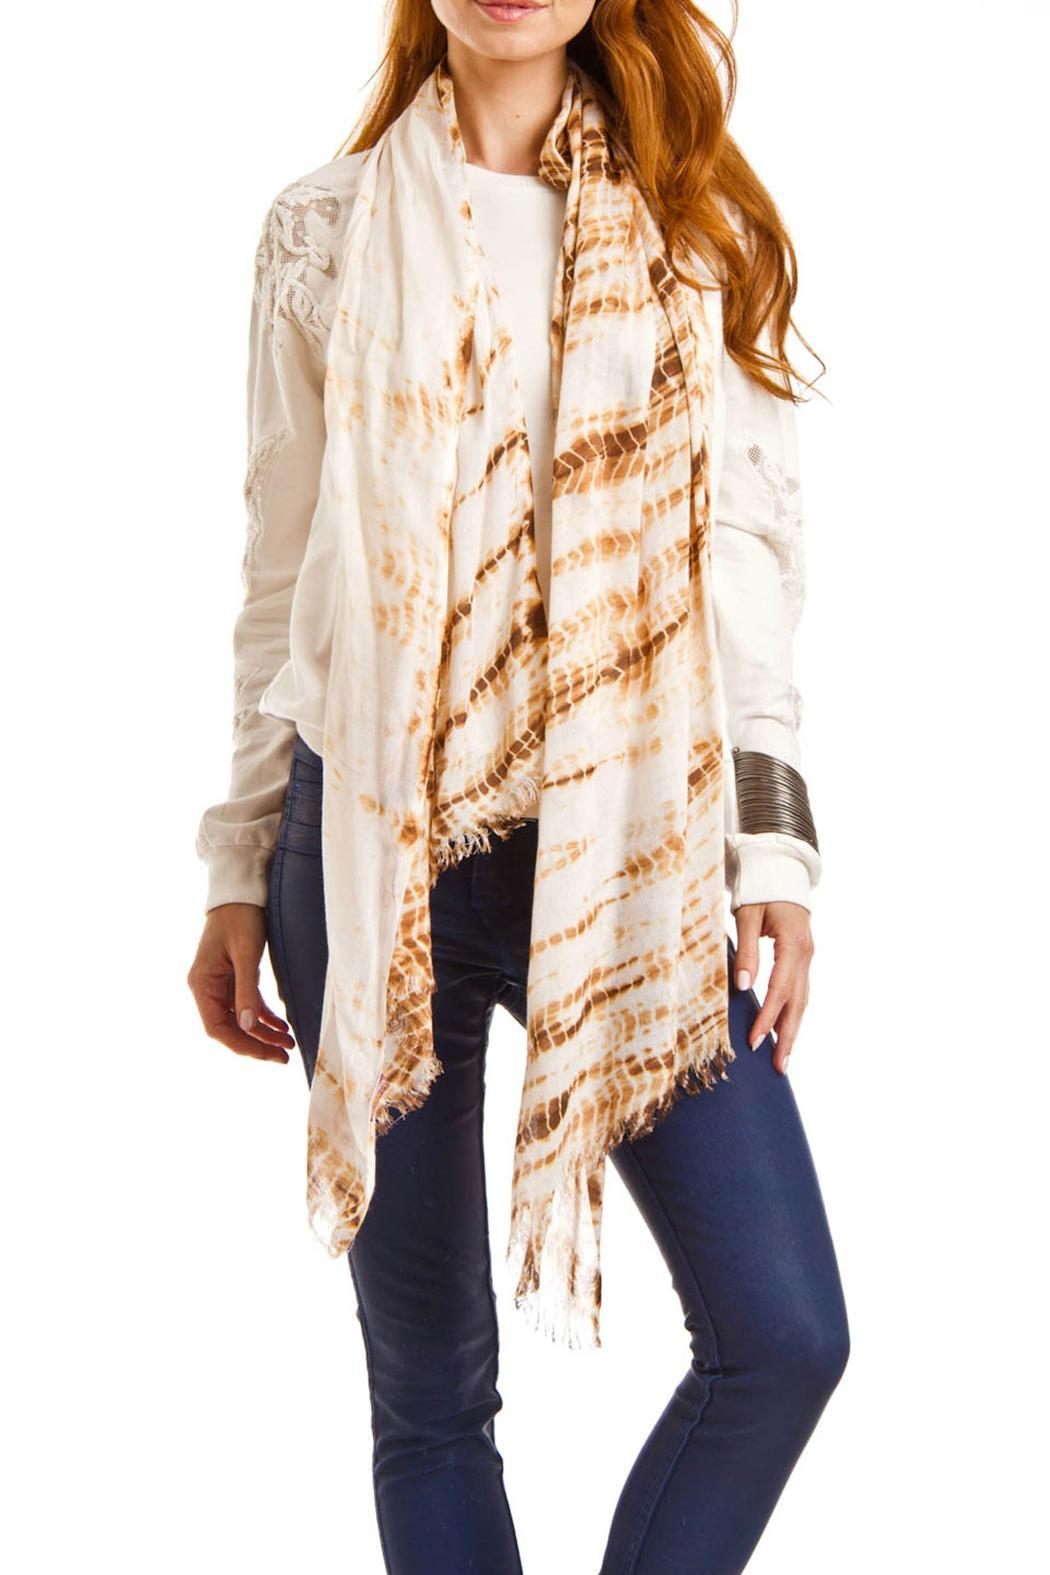 Violet Del Mar Hand Tie-Dye Scarf - Front Cropped Image